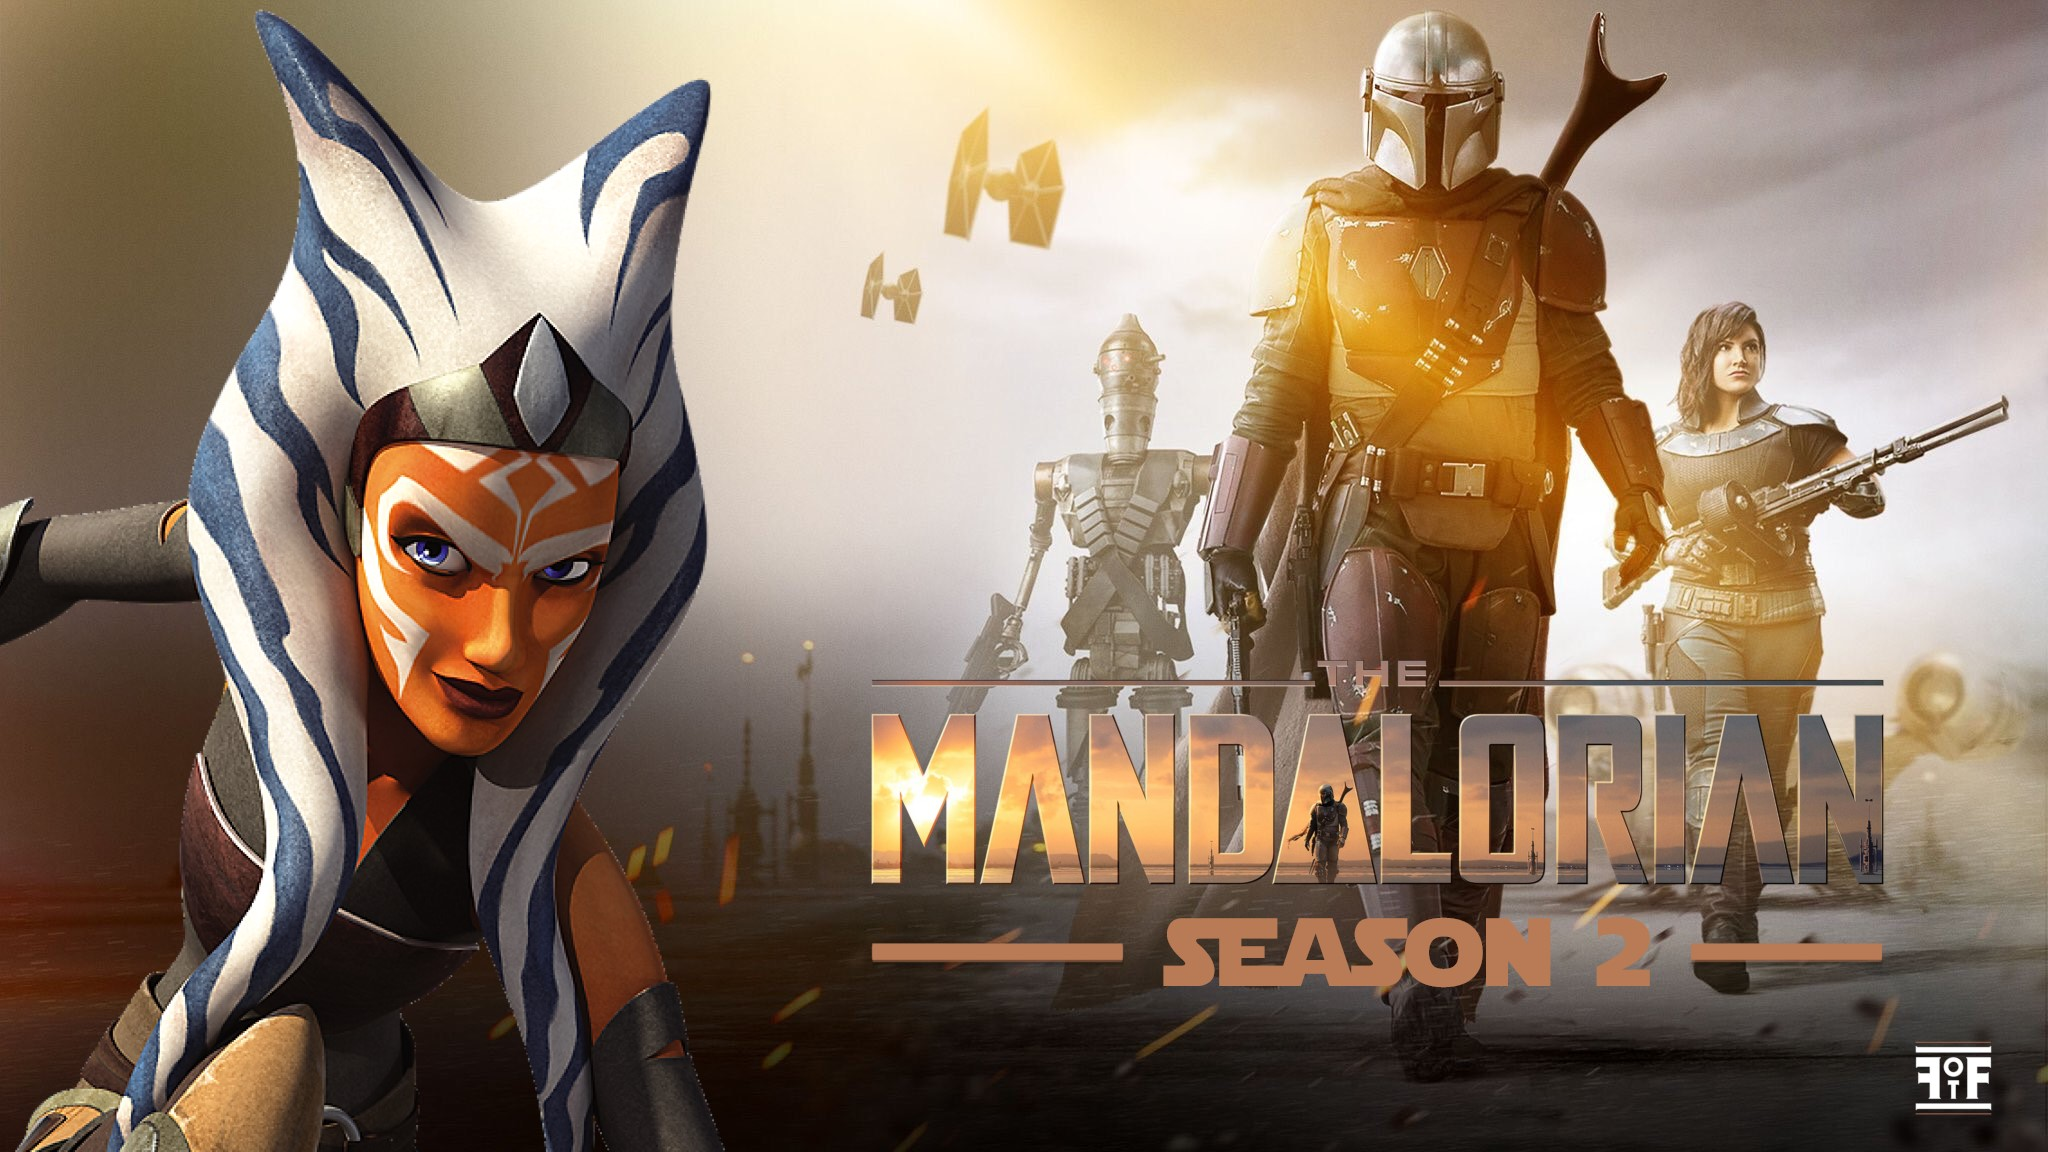 Does The Ultimate Lightsaber Duel Await Us In The Mandalorian Season 2 Future Of The Force